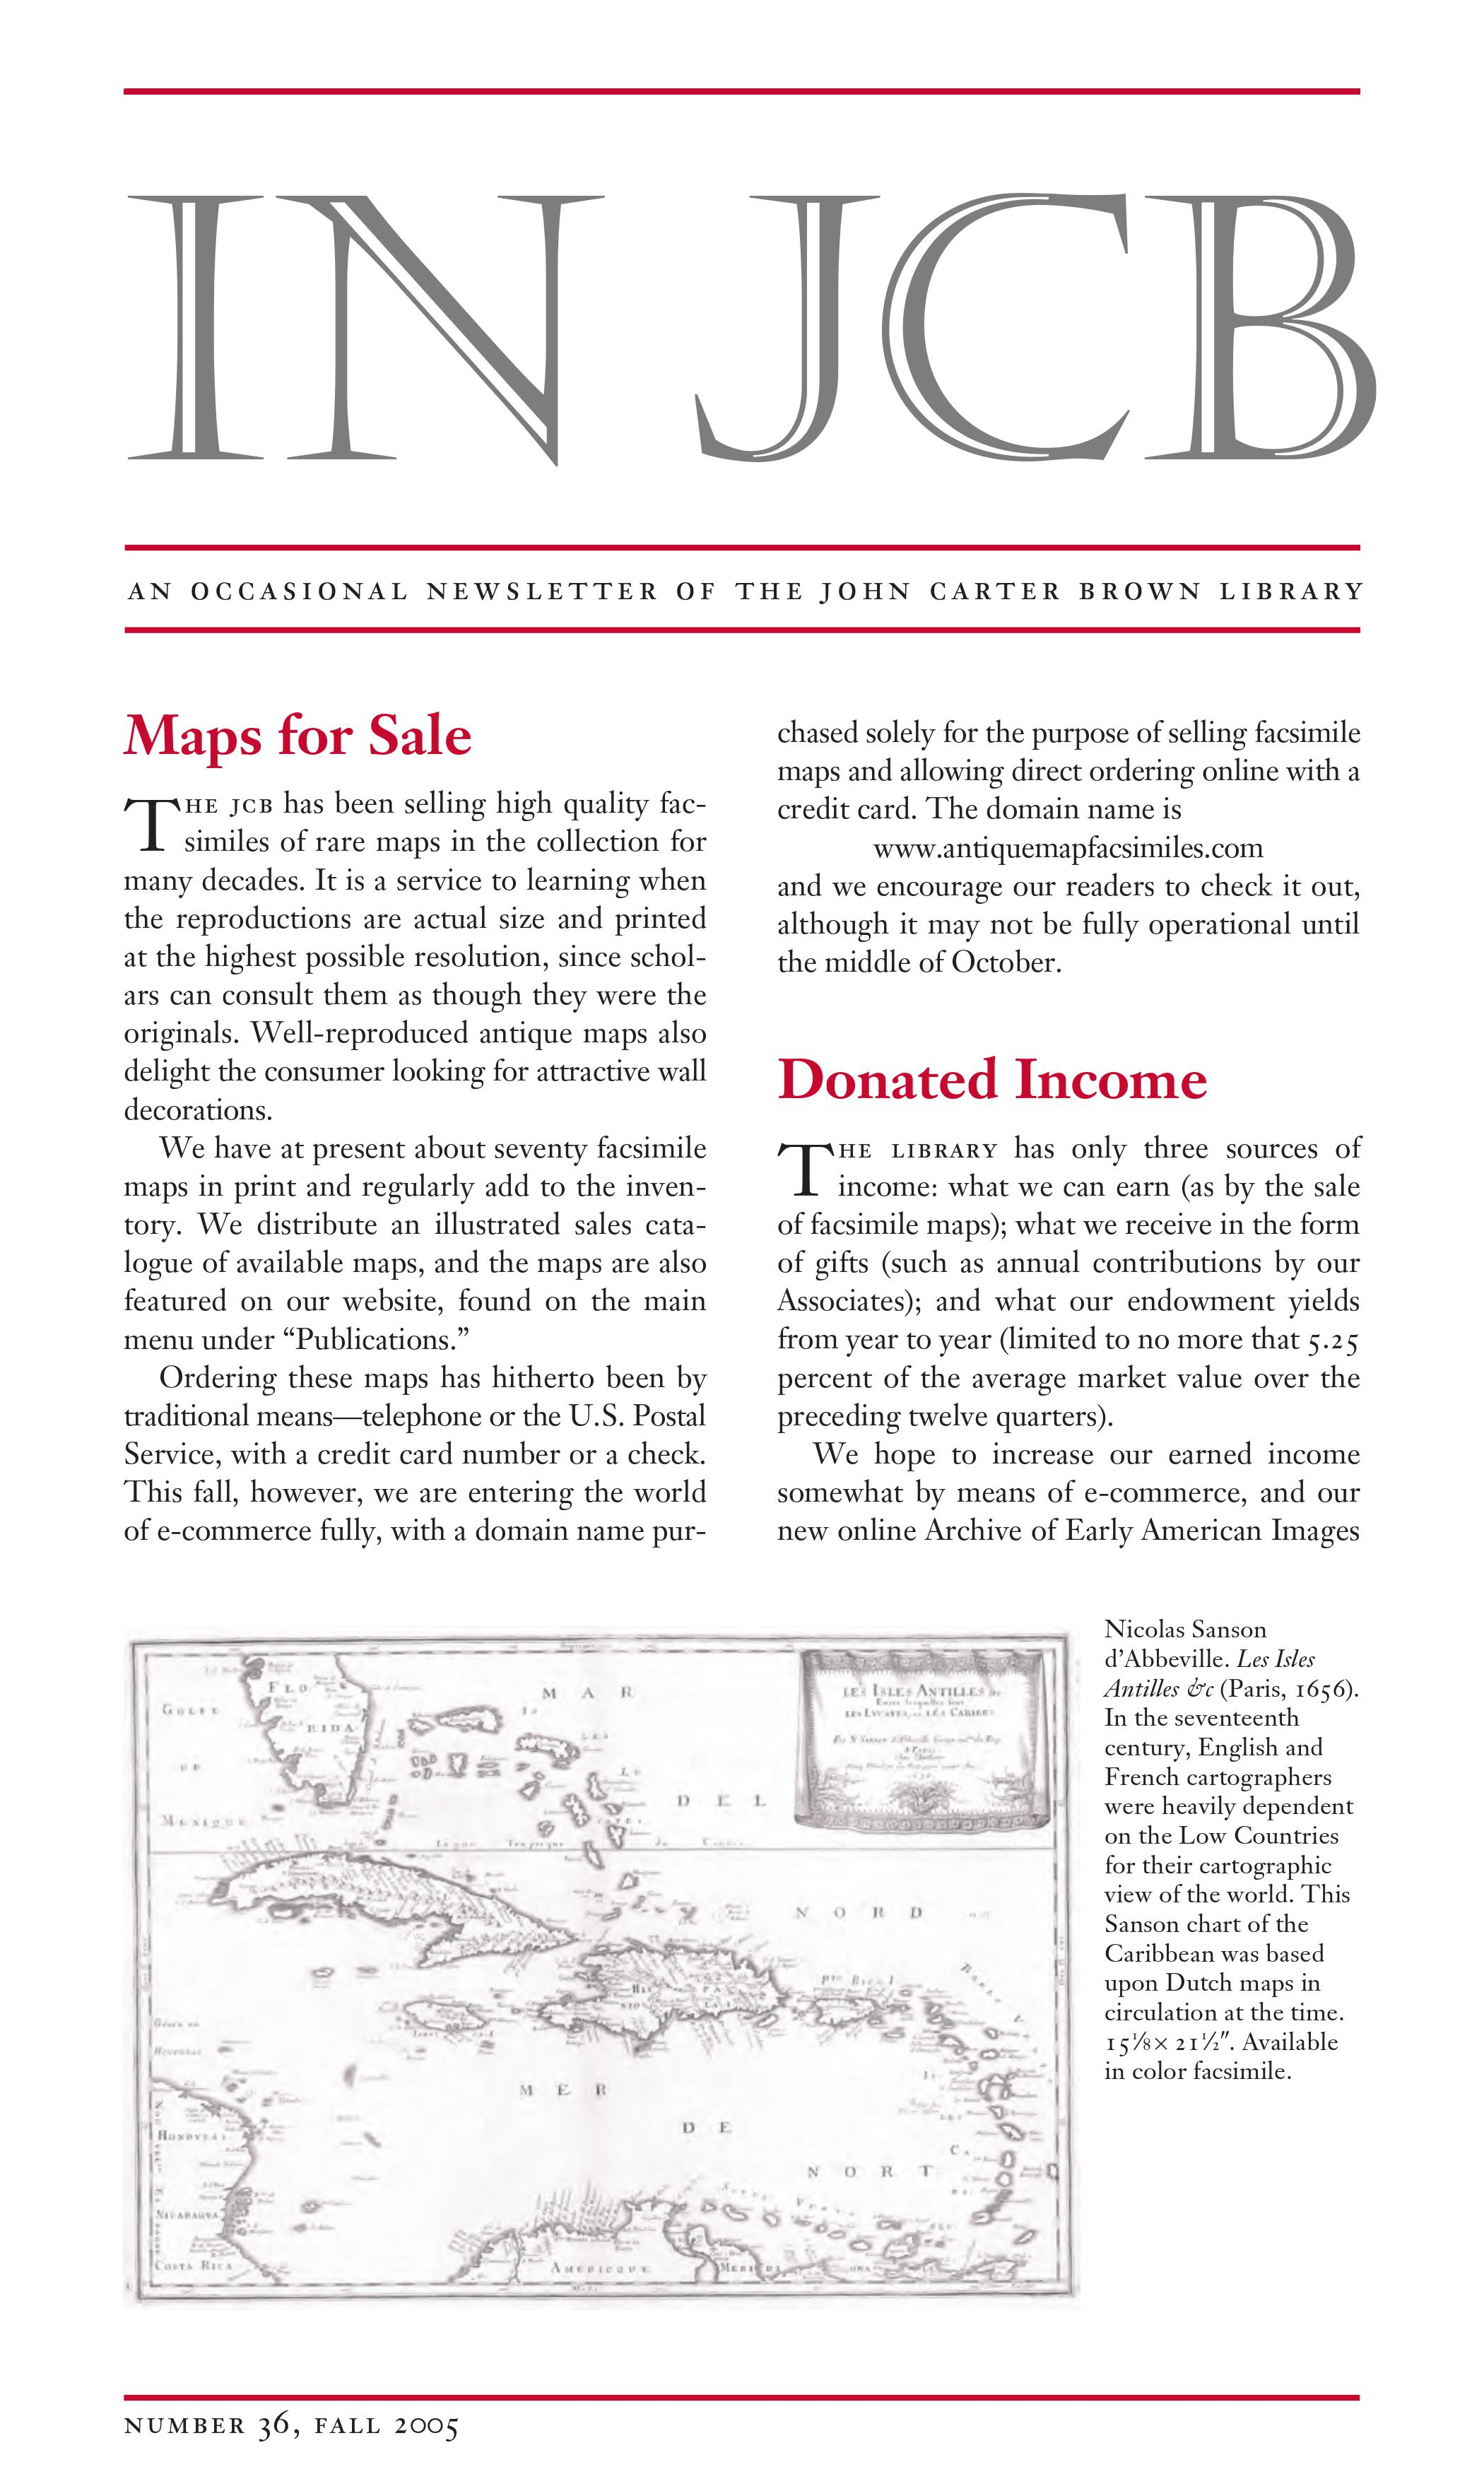 text of a newsletter and an image of a map of the Caribbean